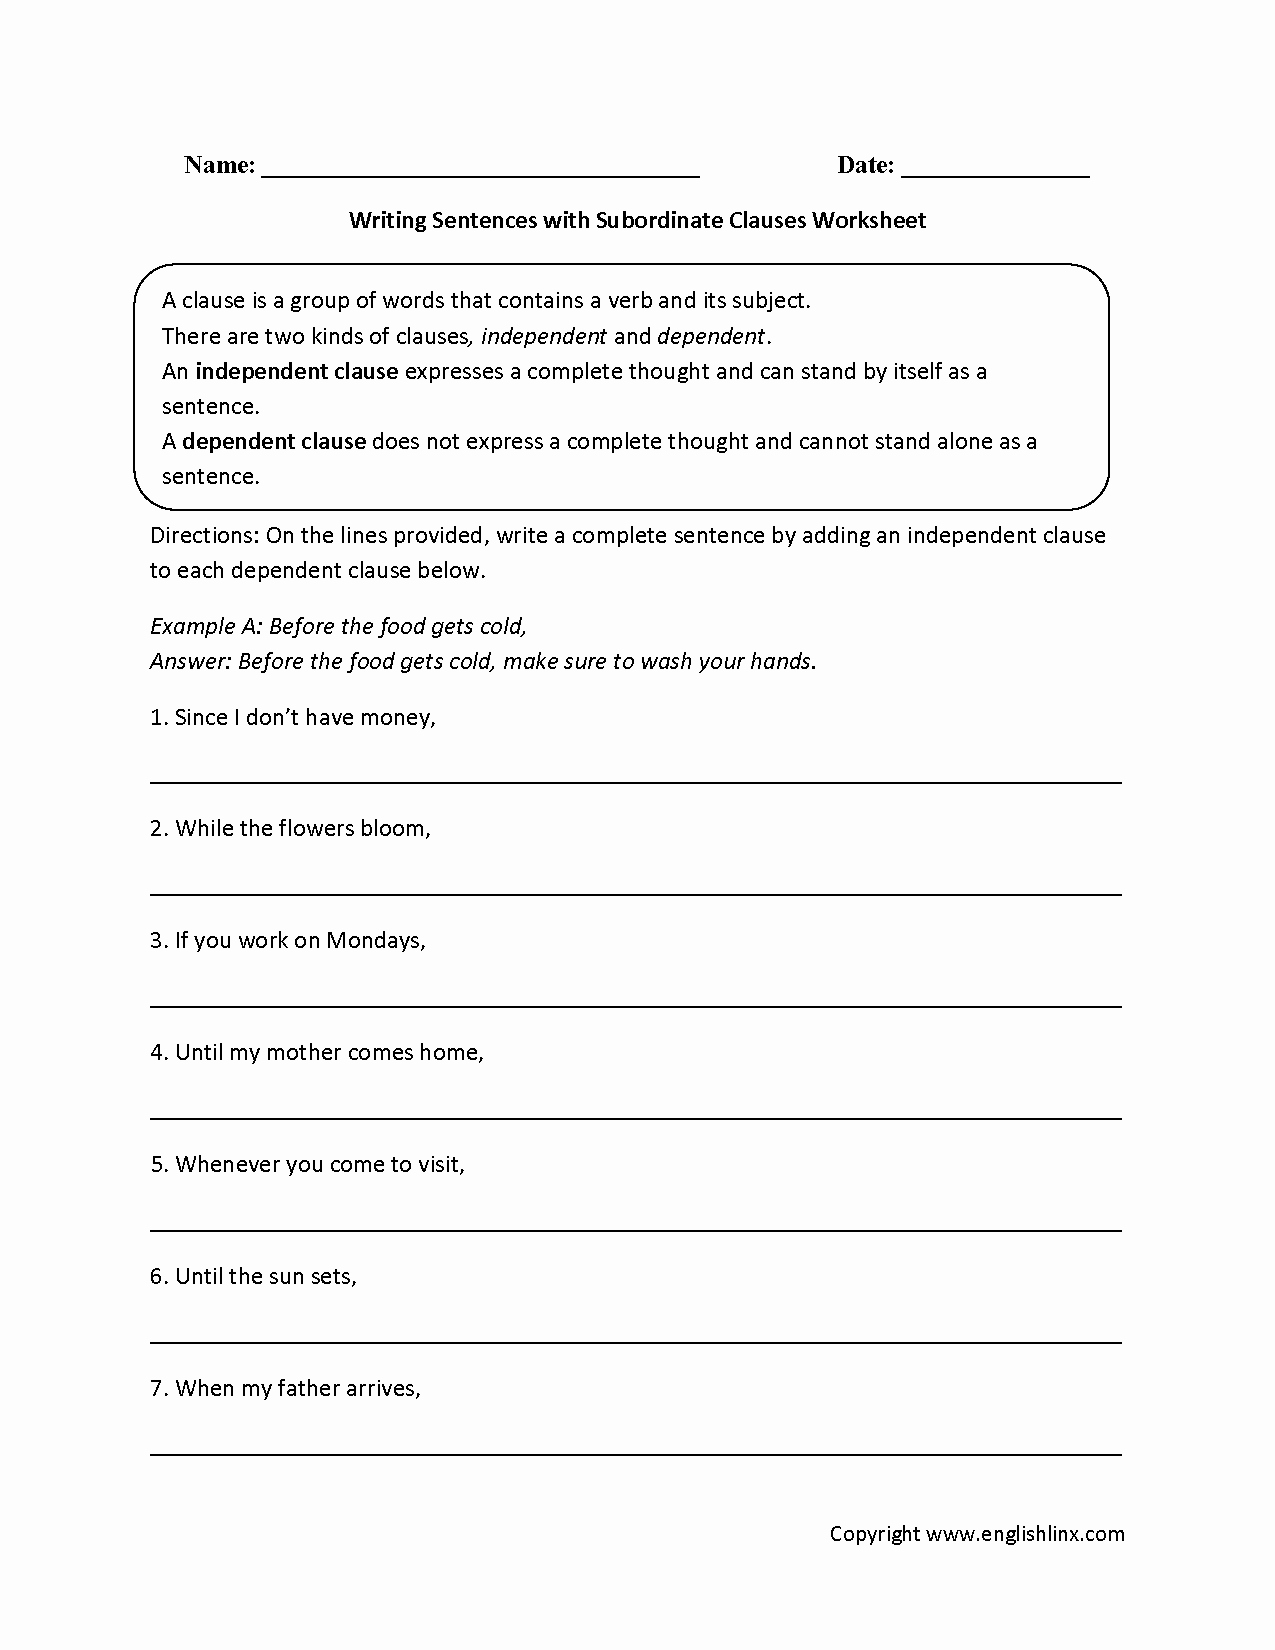 Phrase and Clause Worksheet New Writing Sentences with Subordinate Clauses Worksheet